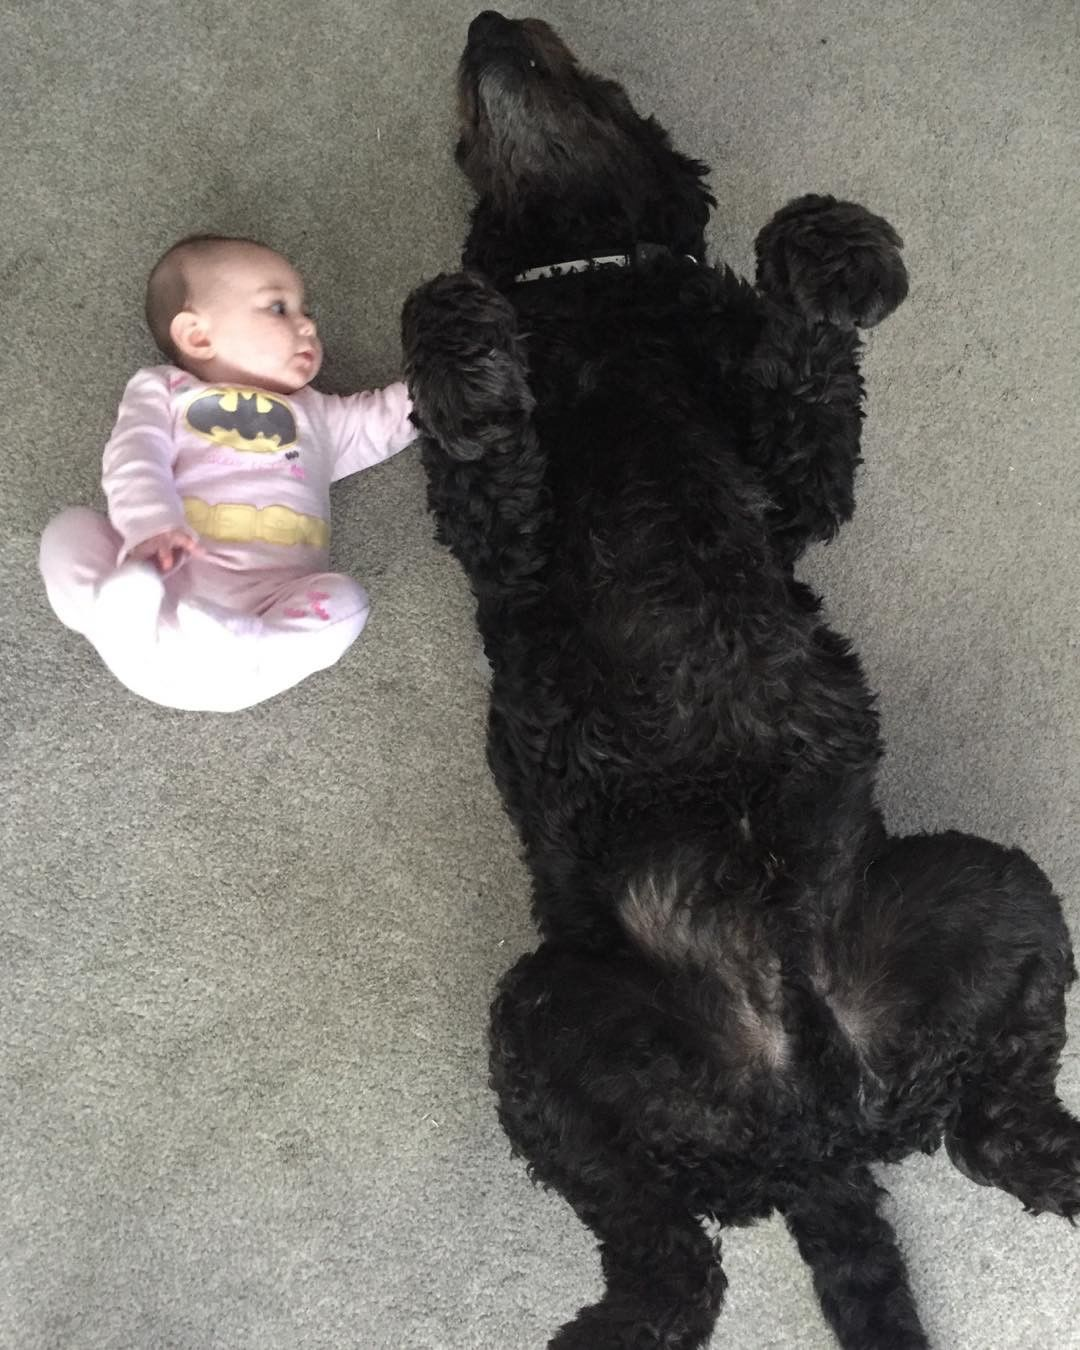 21 Pictures Of Dogs Waiting For Belly Rubs That May Actually Kill You